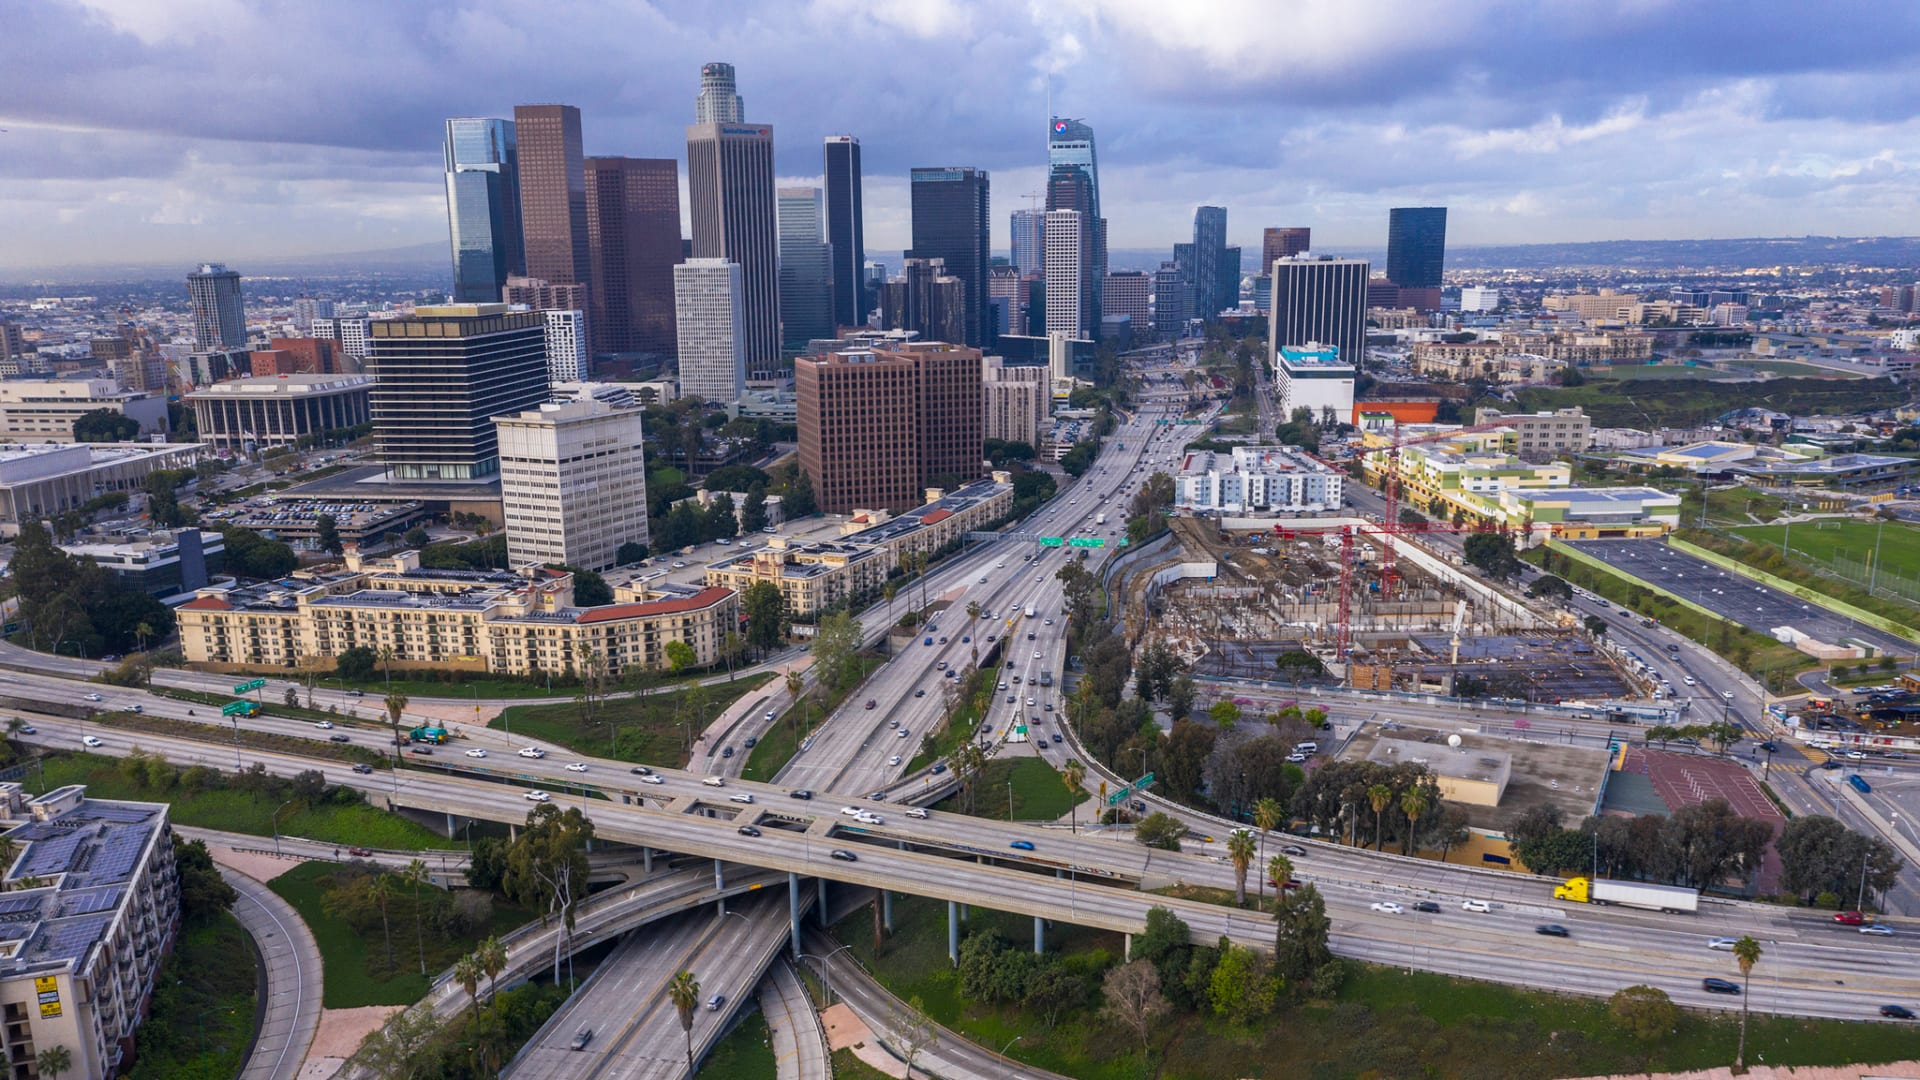 A New Survey of L.A. Tech Shows VCs Diversifying While Wage Disparities Remain